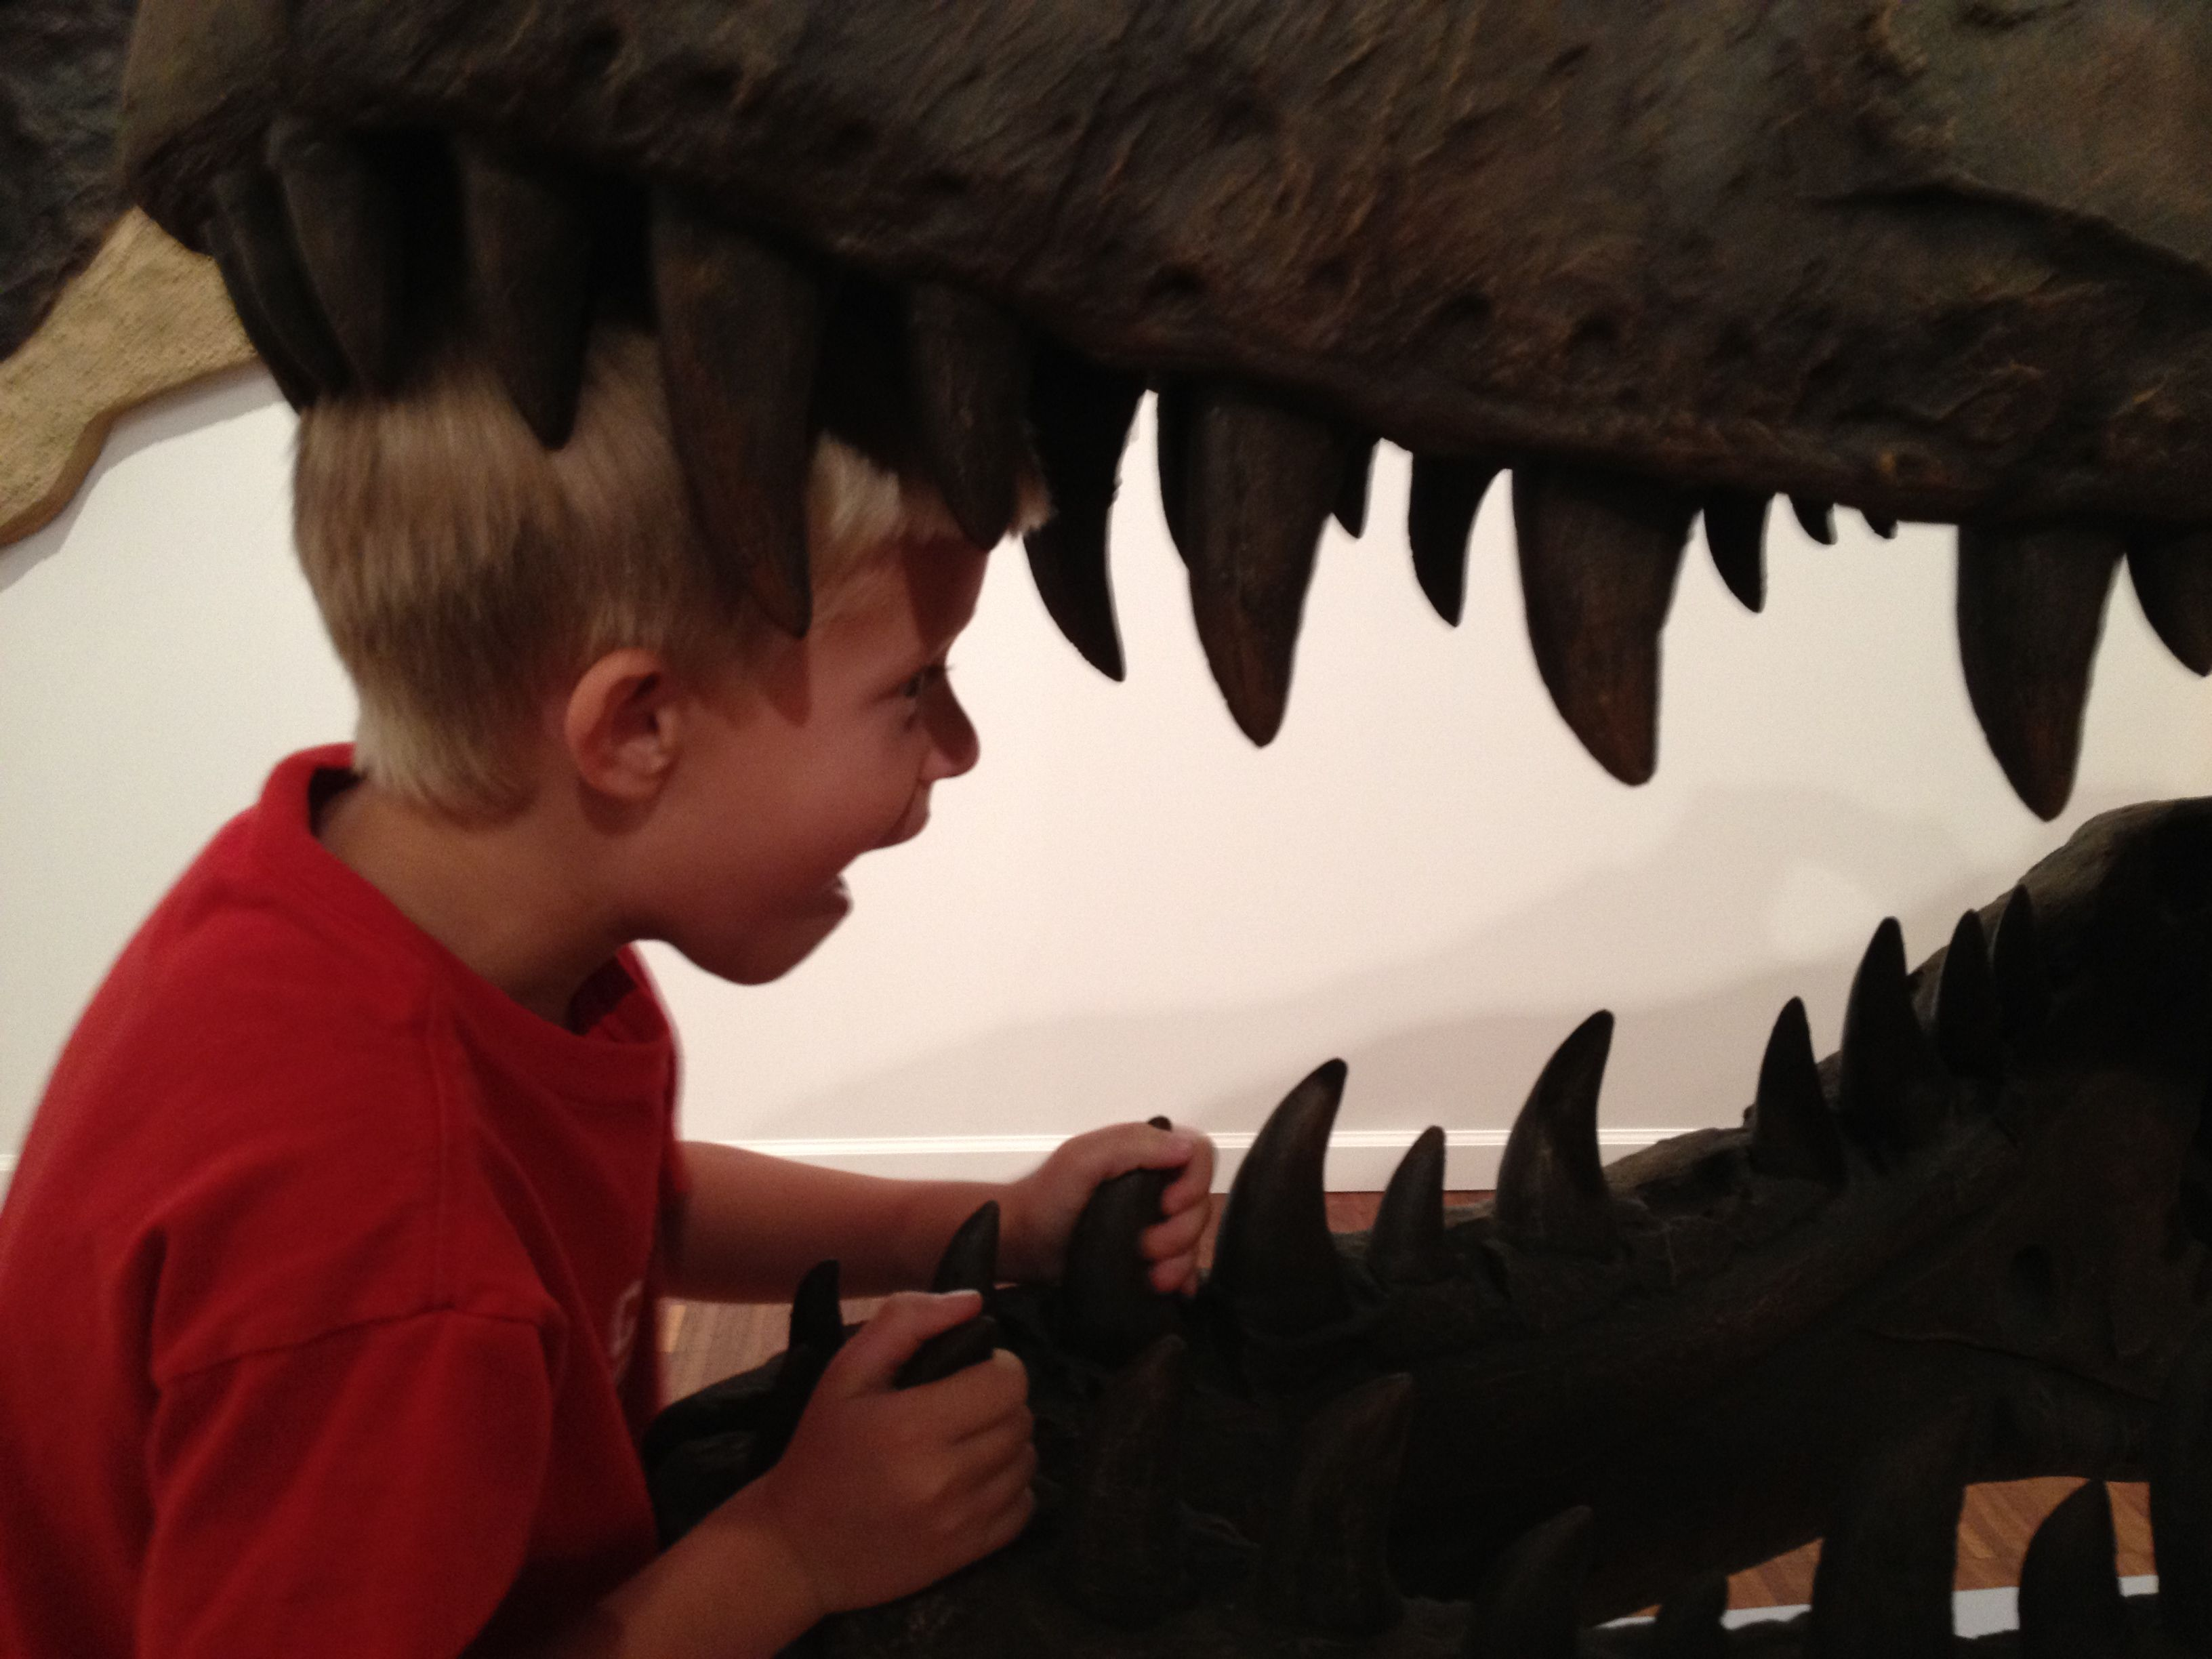 Go on a dinosaur hunt!  Find dinosaurs at the Mather's Museum (shown), in Bryan Park, at the Wonderlab and on display in Jordan Hall (at IU).